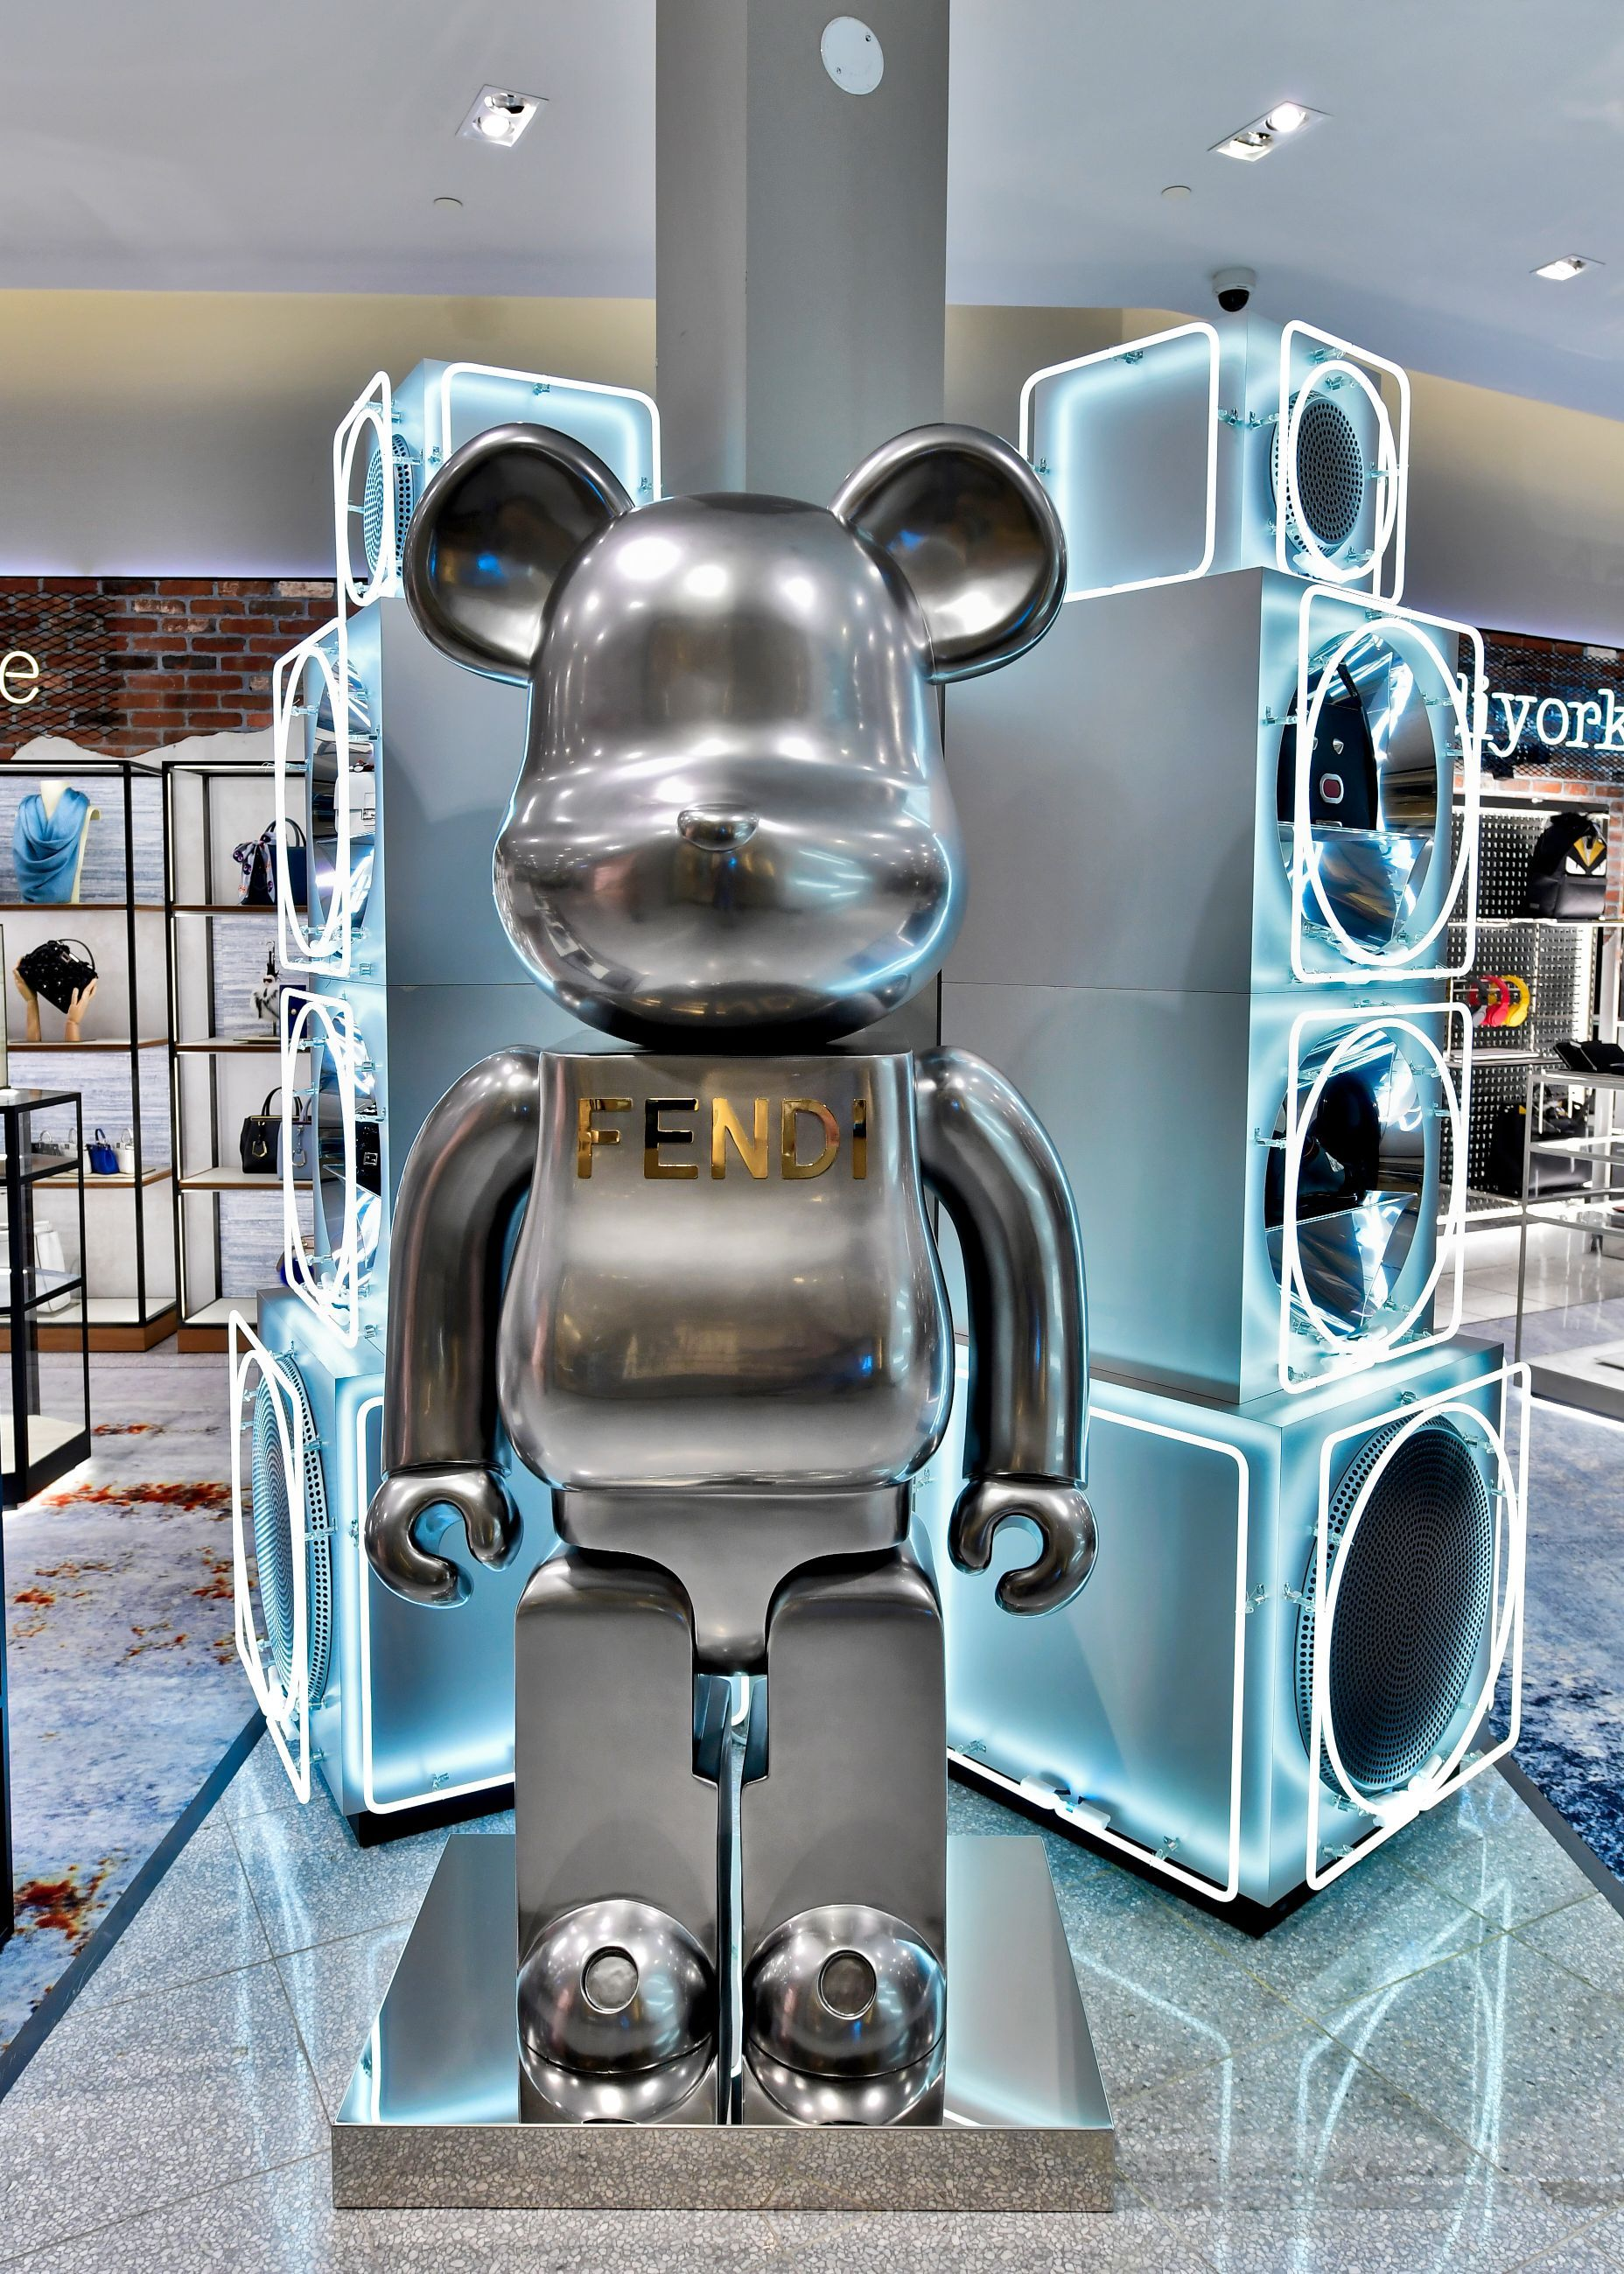 Check out the new Fendi boutique in Yorkdale daa533a0ca13